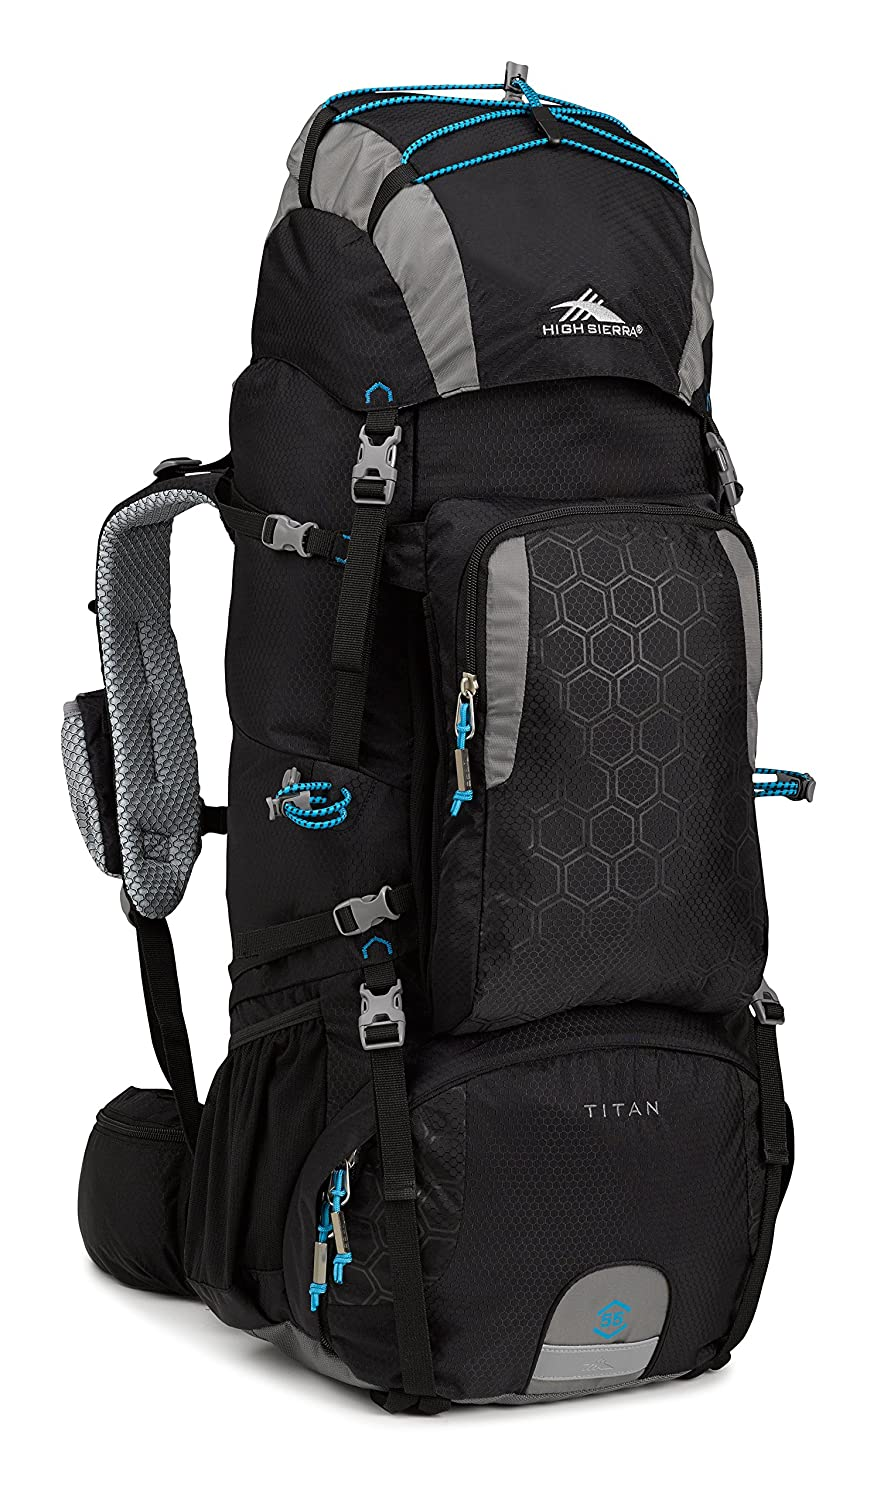 Amazon.com : High Sierra Tech 2 Series Titan 55 Internal Frame Pack ...